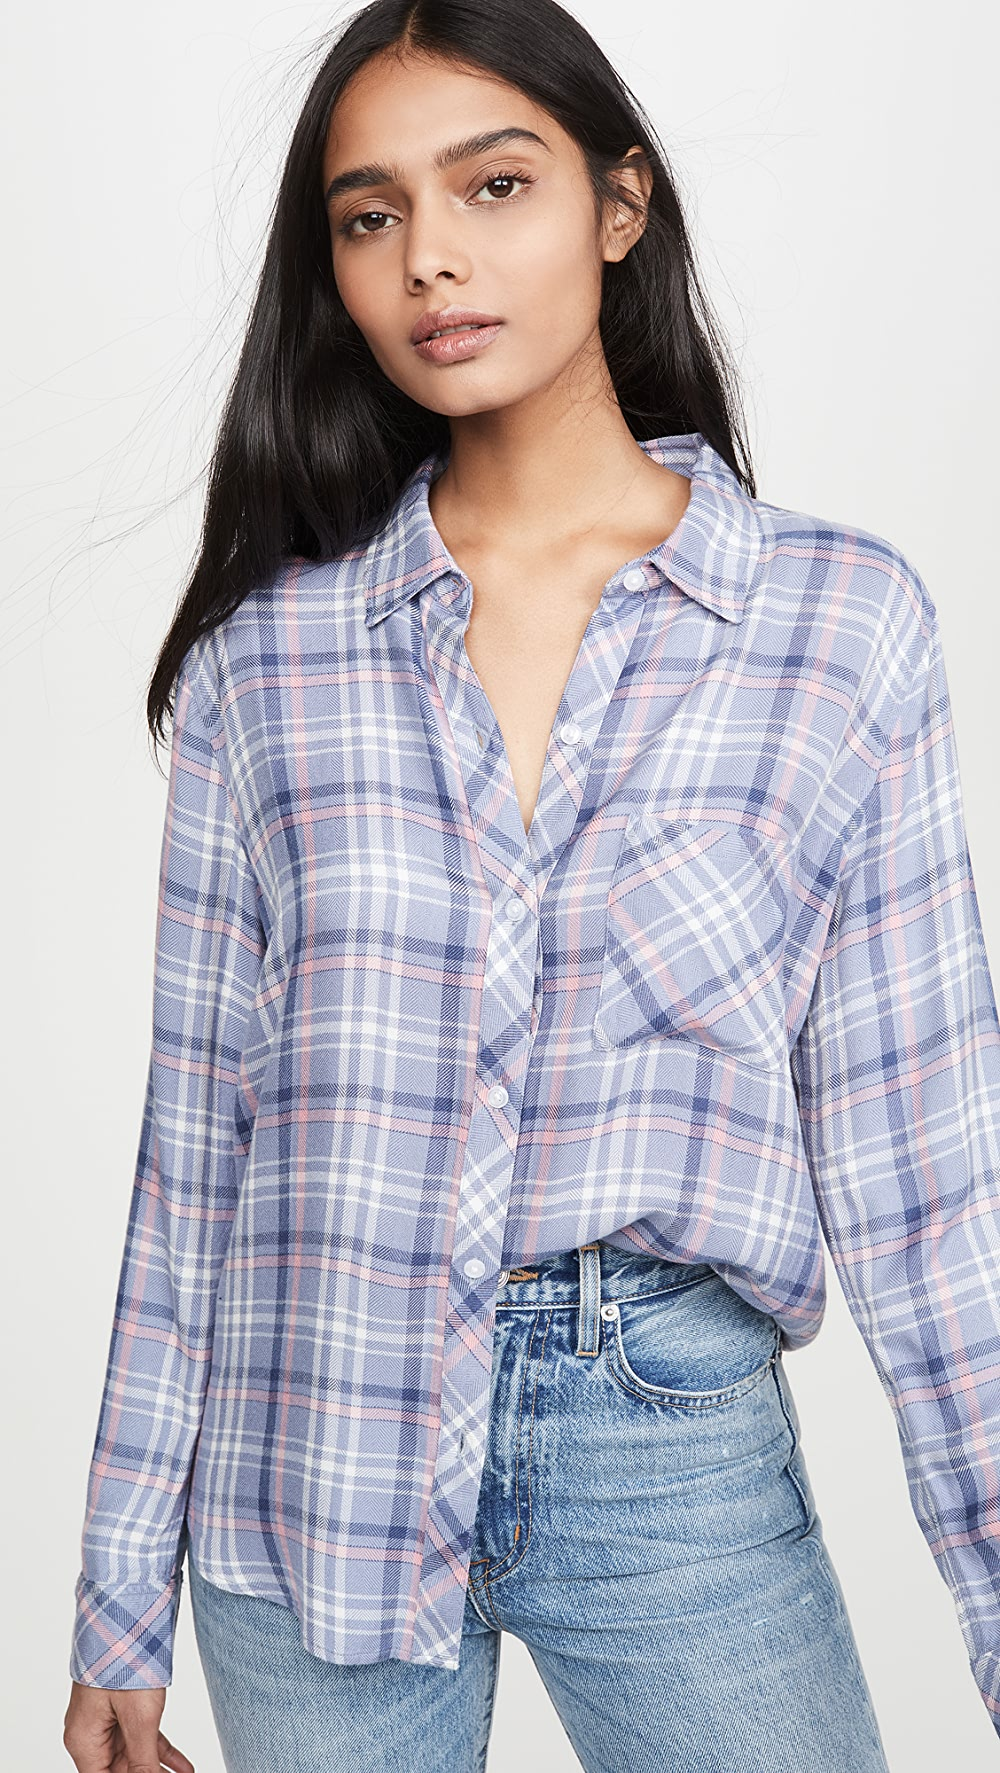 2019 Fashion Rails - Hunter Button Down Products Are Sold Without Limitations